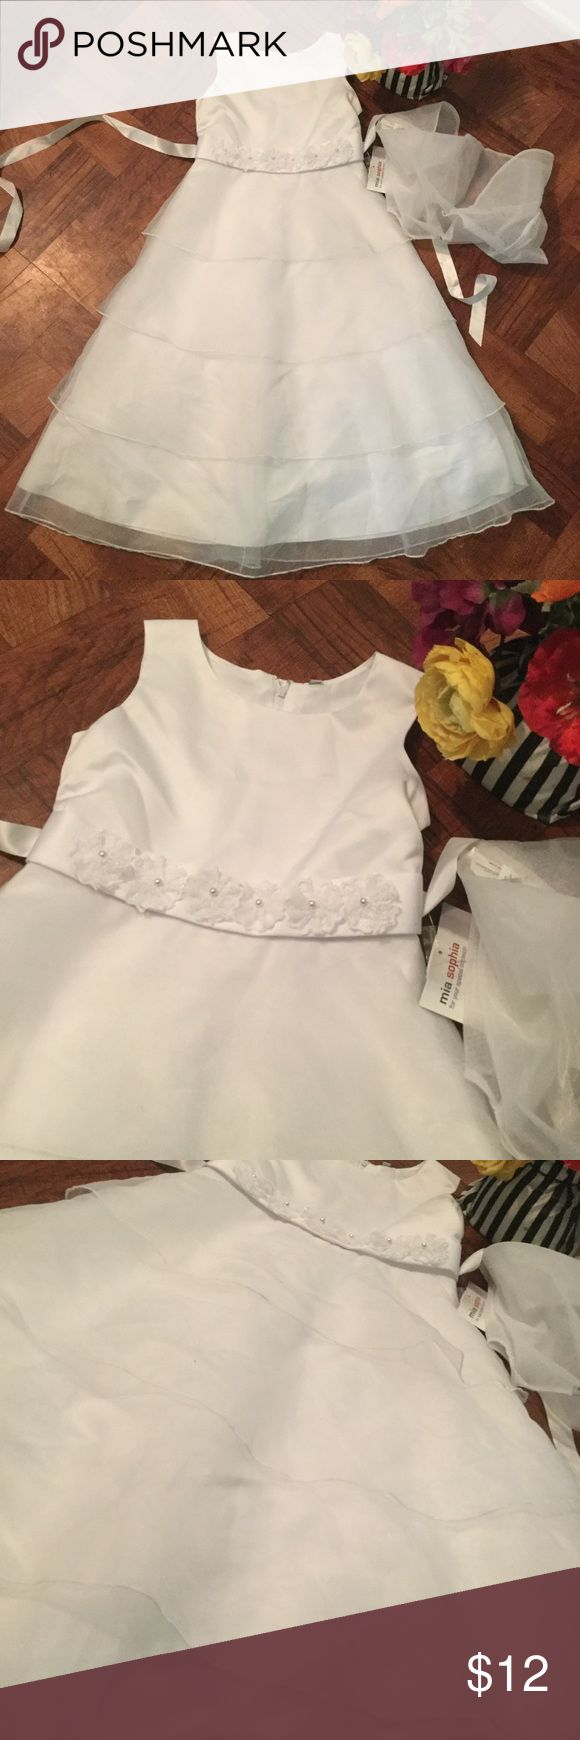 White Gown -NWT and in good condition  - very adorable Dresses